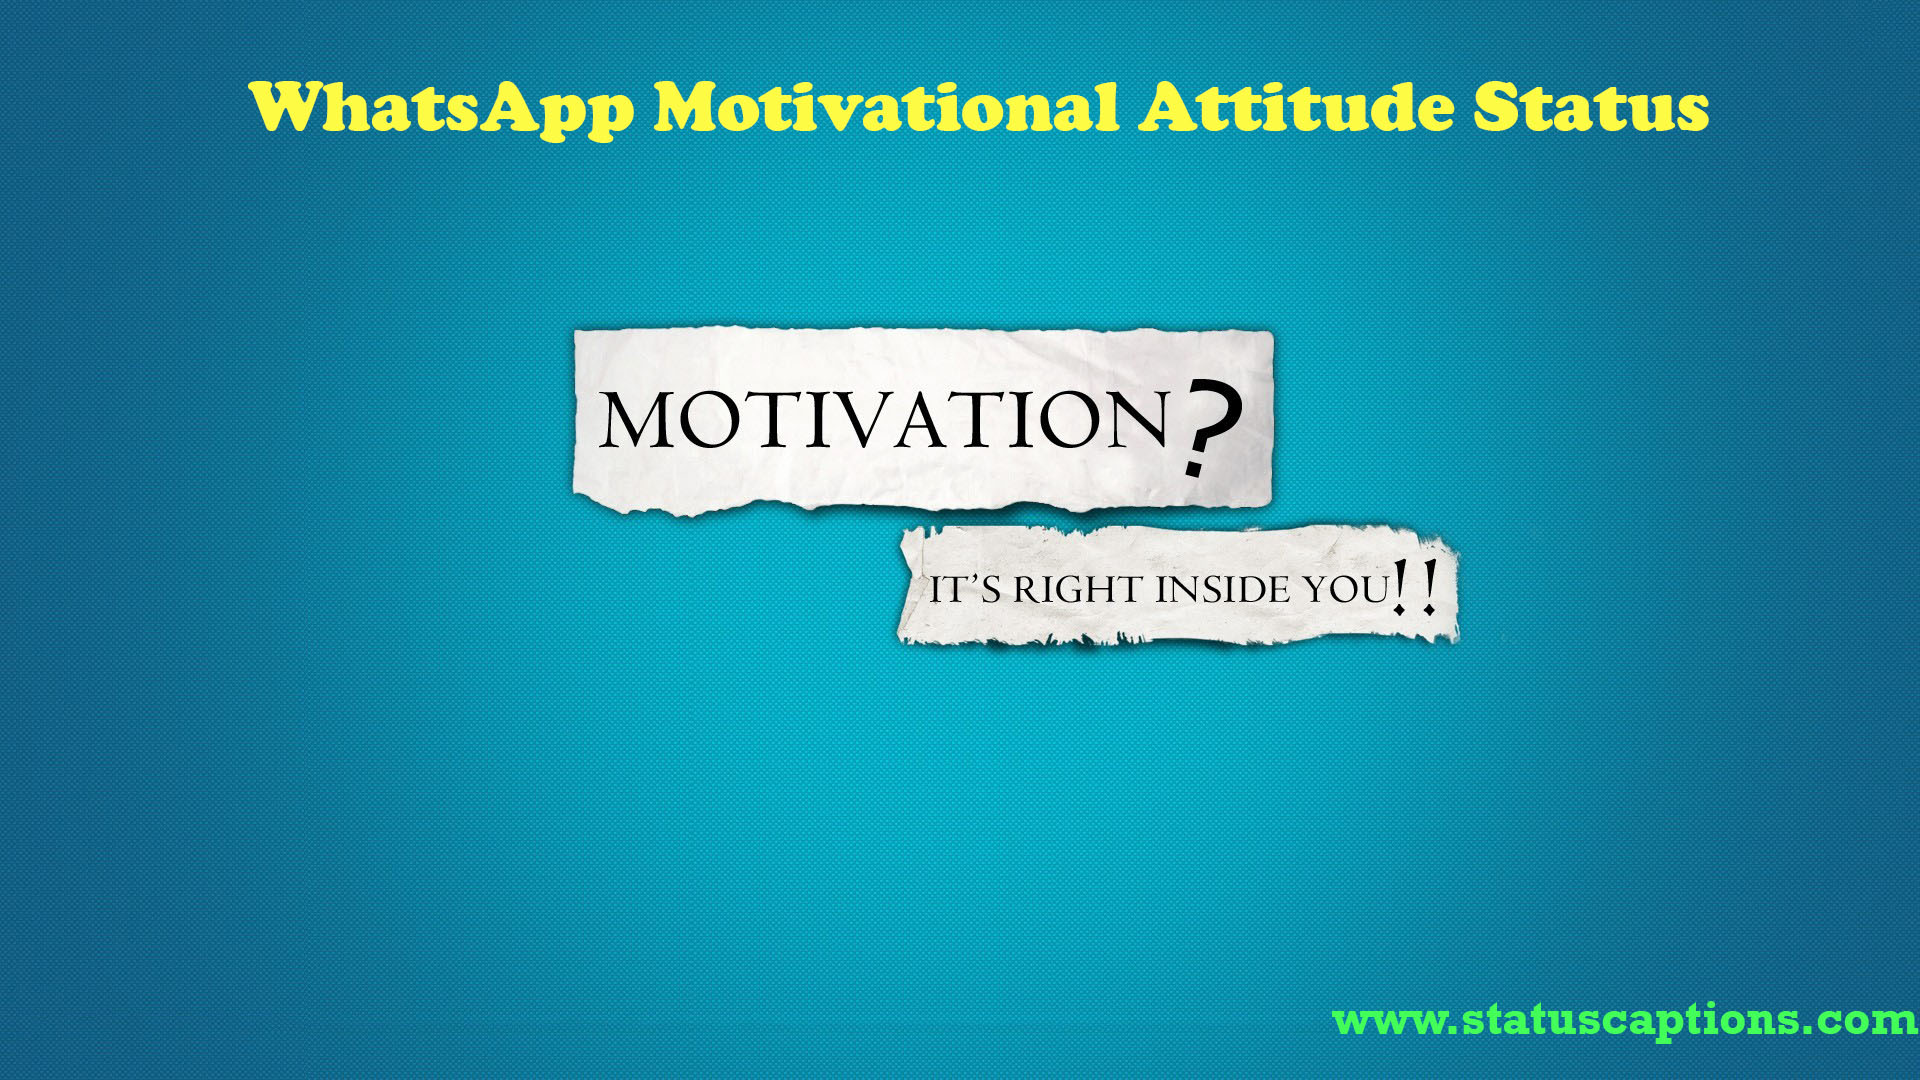 Whatsapp Motivational Attitude Status